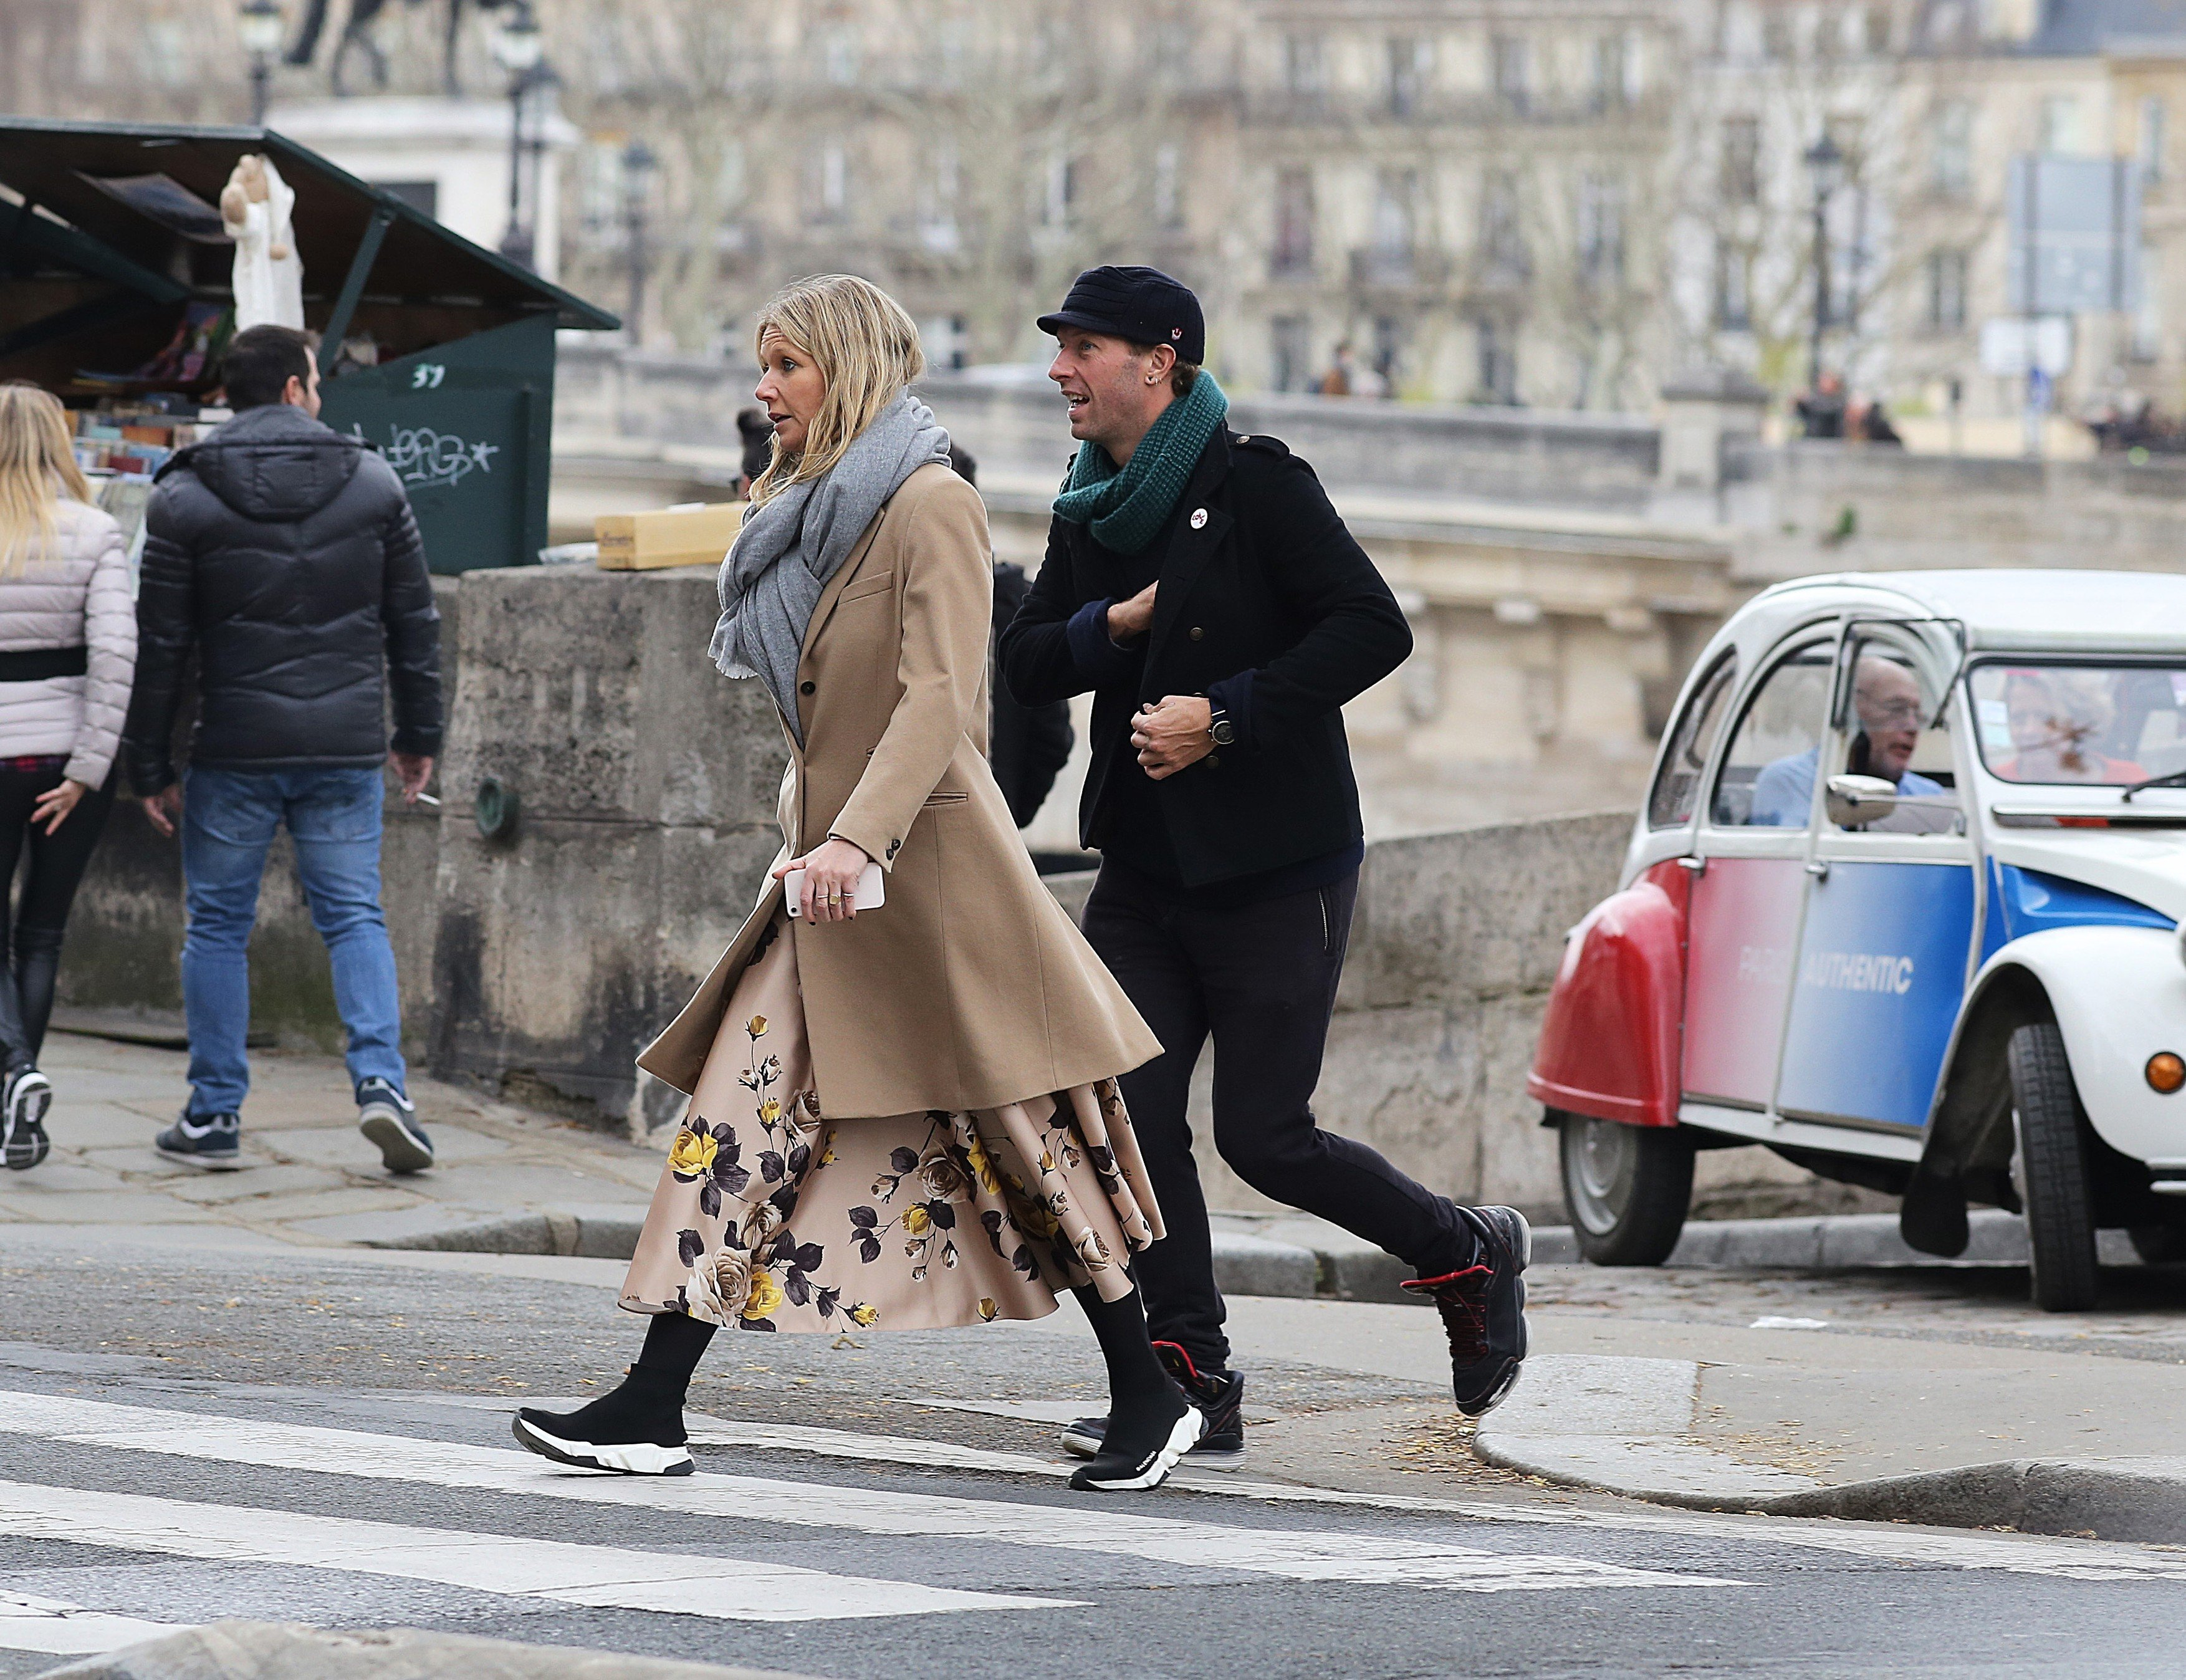 EXCLUSIVE: *NO WEB UNTIL 2200 GMT 4TH APRIL* Coldplay singer, Chris Martin and US Actress Gwyneth Paltrow spend easter weekend in Paris with their kids. The couple were seen walking along the banks of the Seine river in the French capital and in ST Germain des prés. Paris. The couple looked stylish for the outing as they indulged in conversation. 01 Apr 2018, Image: 367653763, License: Rights-managed, Restrictions: NO Andorra, Argentina, Austria, Belgium, Bolivia, Chile, China, Costa Rica, Croatia, Czech Republic, El Salvador, Estonia, Finland, France, French Guiana, French Polynesia, French Southern Ter, Greece, Guadeloupe, Guatemala, Honduras, Hungary, Japan, Latvia, Lithuania, Macedonia, Mexico, Monaco, Netherlands, Paraguay, Peru, Poland, Portugal, Puerto Rico, Romania, Russia, South Africa, Spain, Sweden, Switzerland, Taiwan, Uruguay, Venezuela, Model Release: no, Credit line: Profimedia, Mega Agency